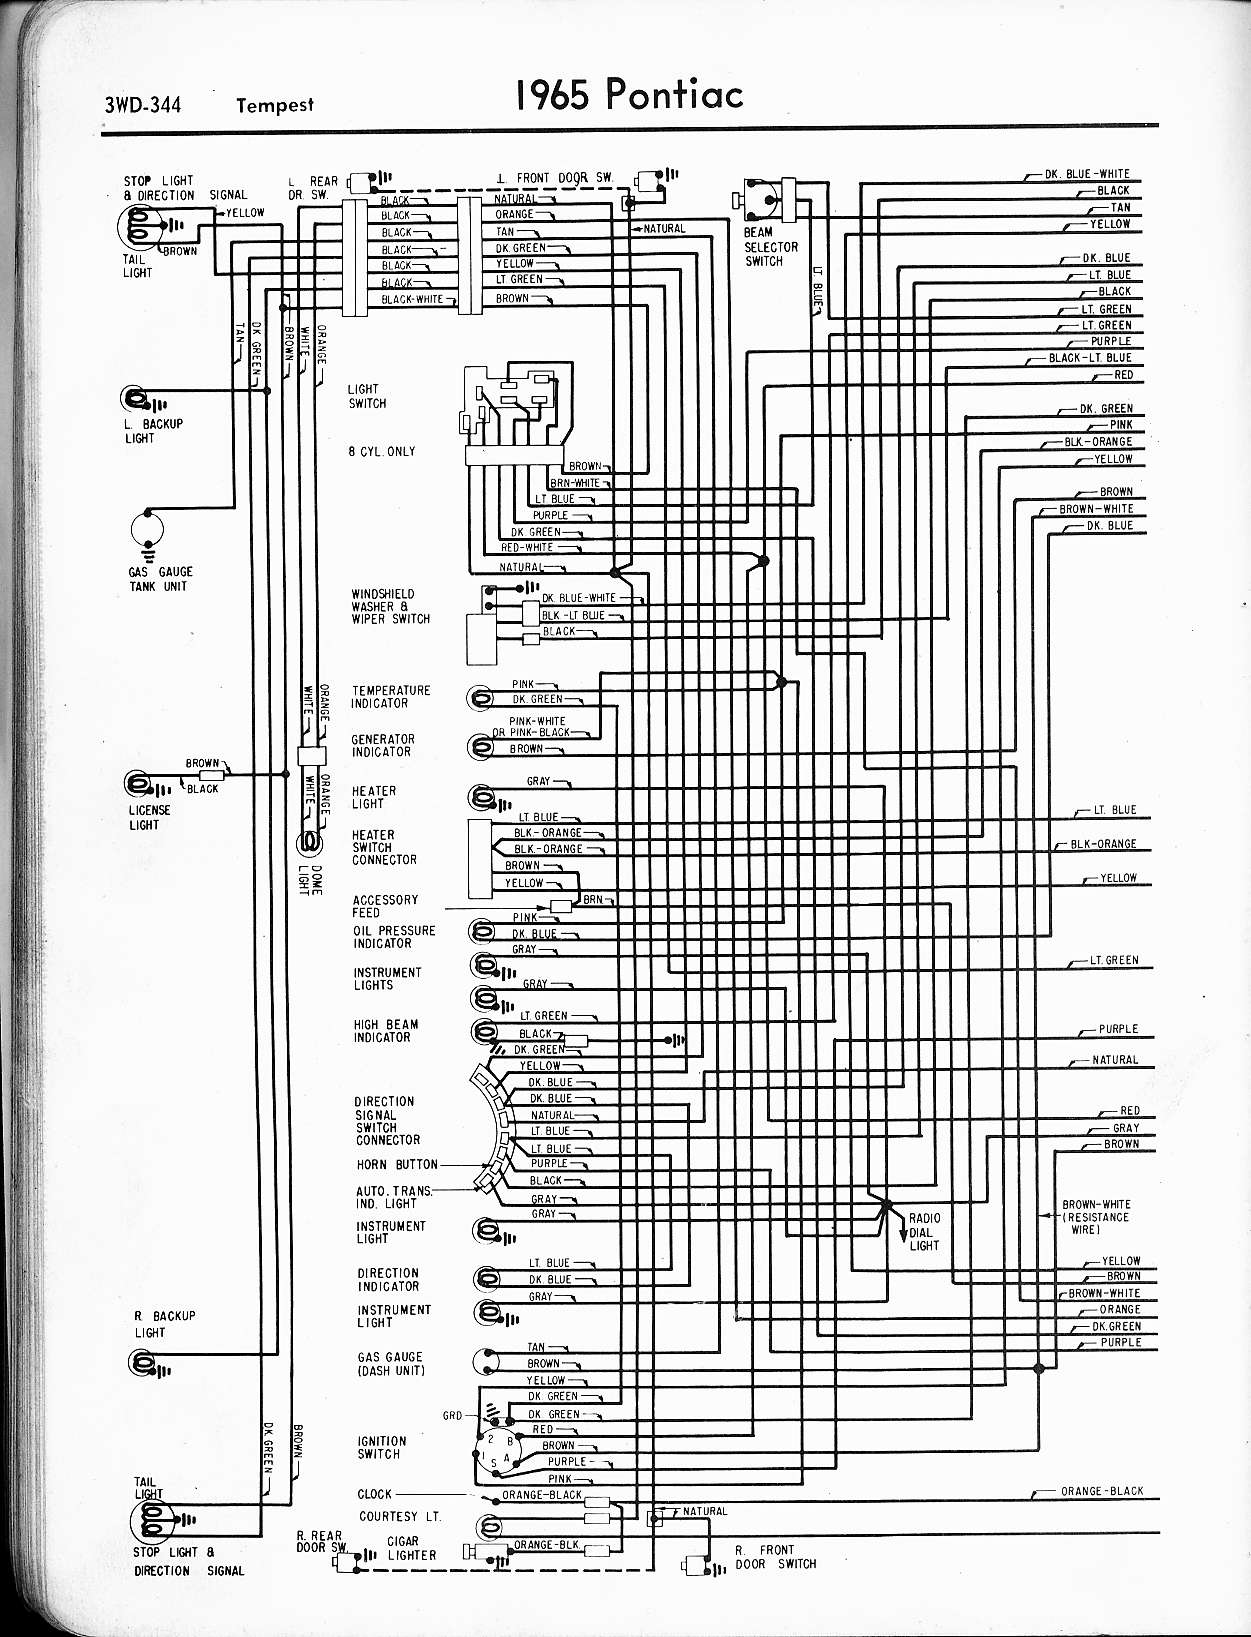 70 Chevelle Starter Wiring Harness Diagram | Wiring Diagram on 1968 chevelle wiring schematic, 70 chevelle dash gauges, 70 chevelle dash speaker,